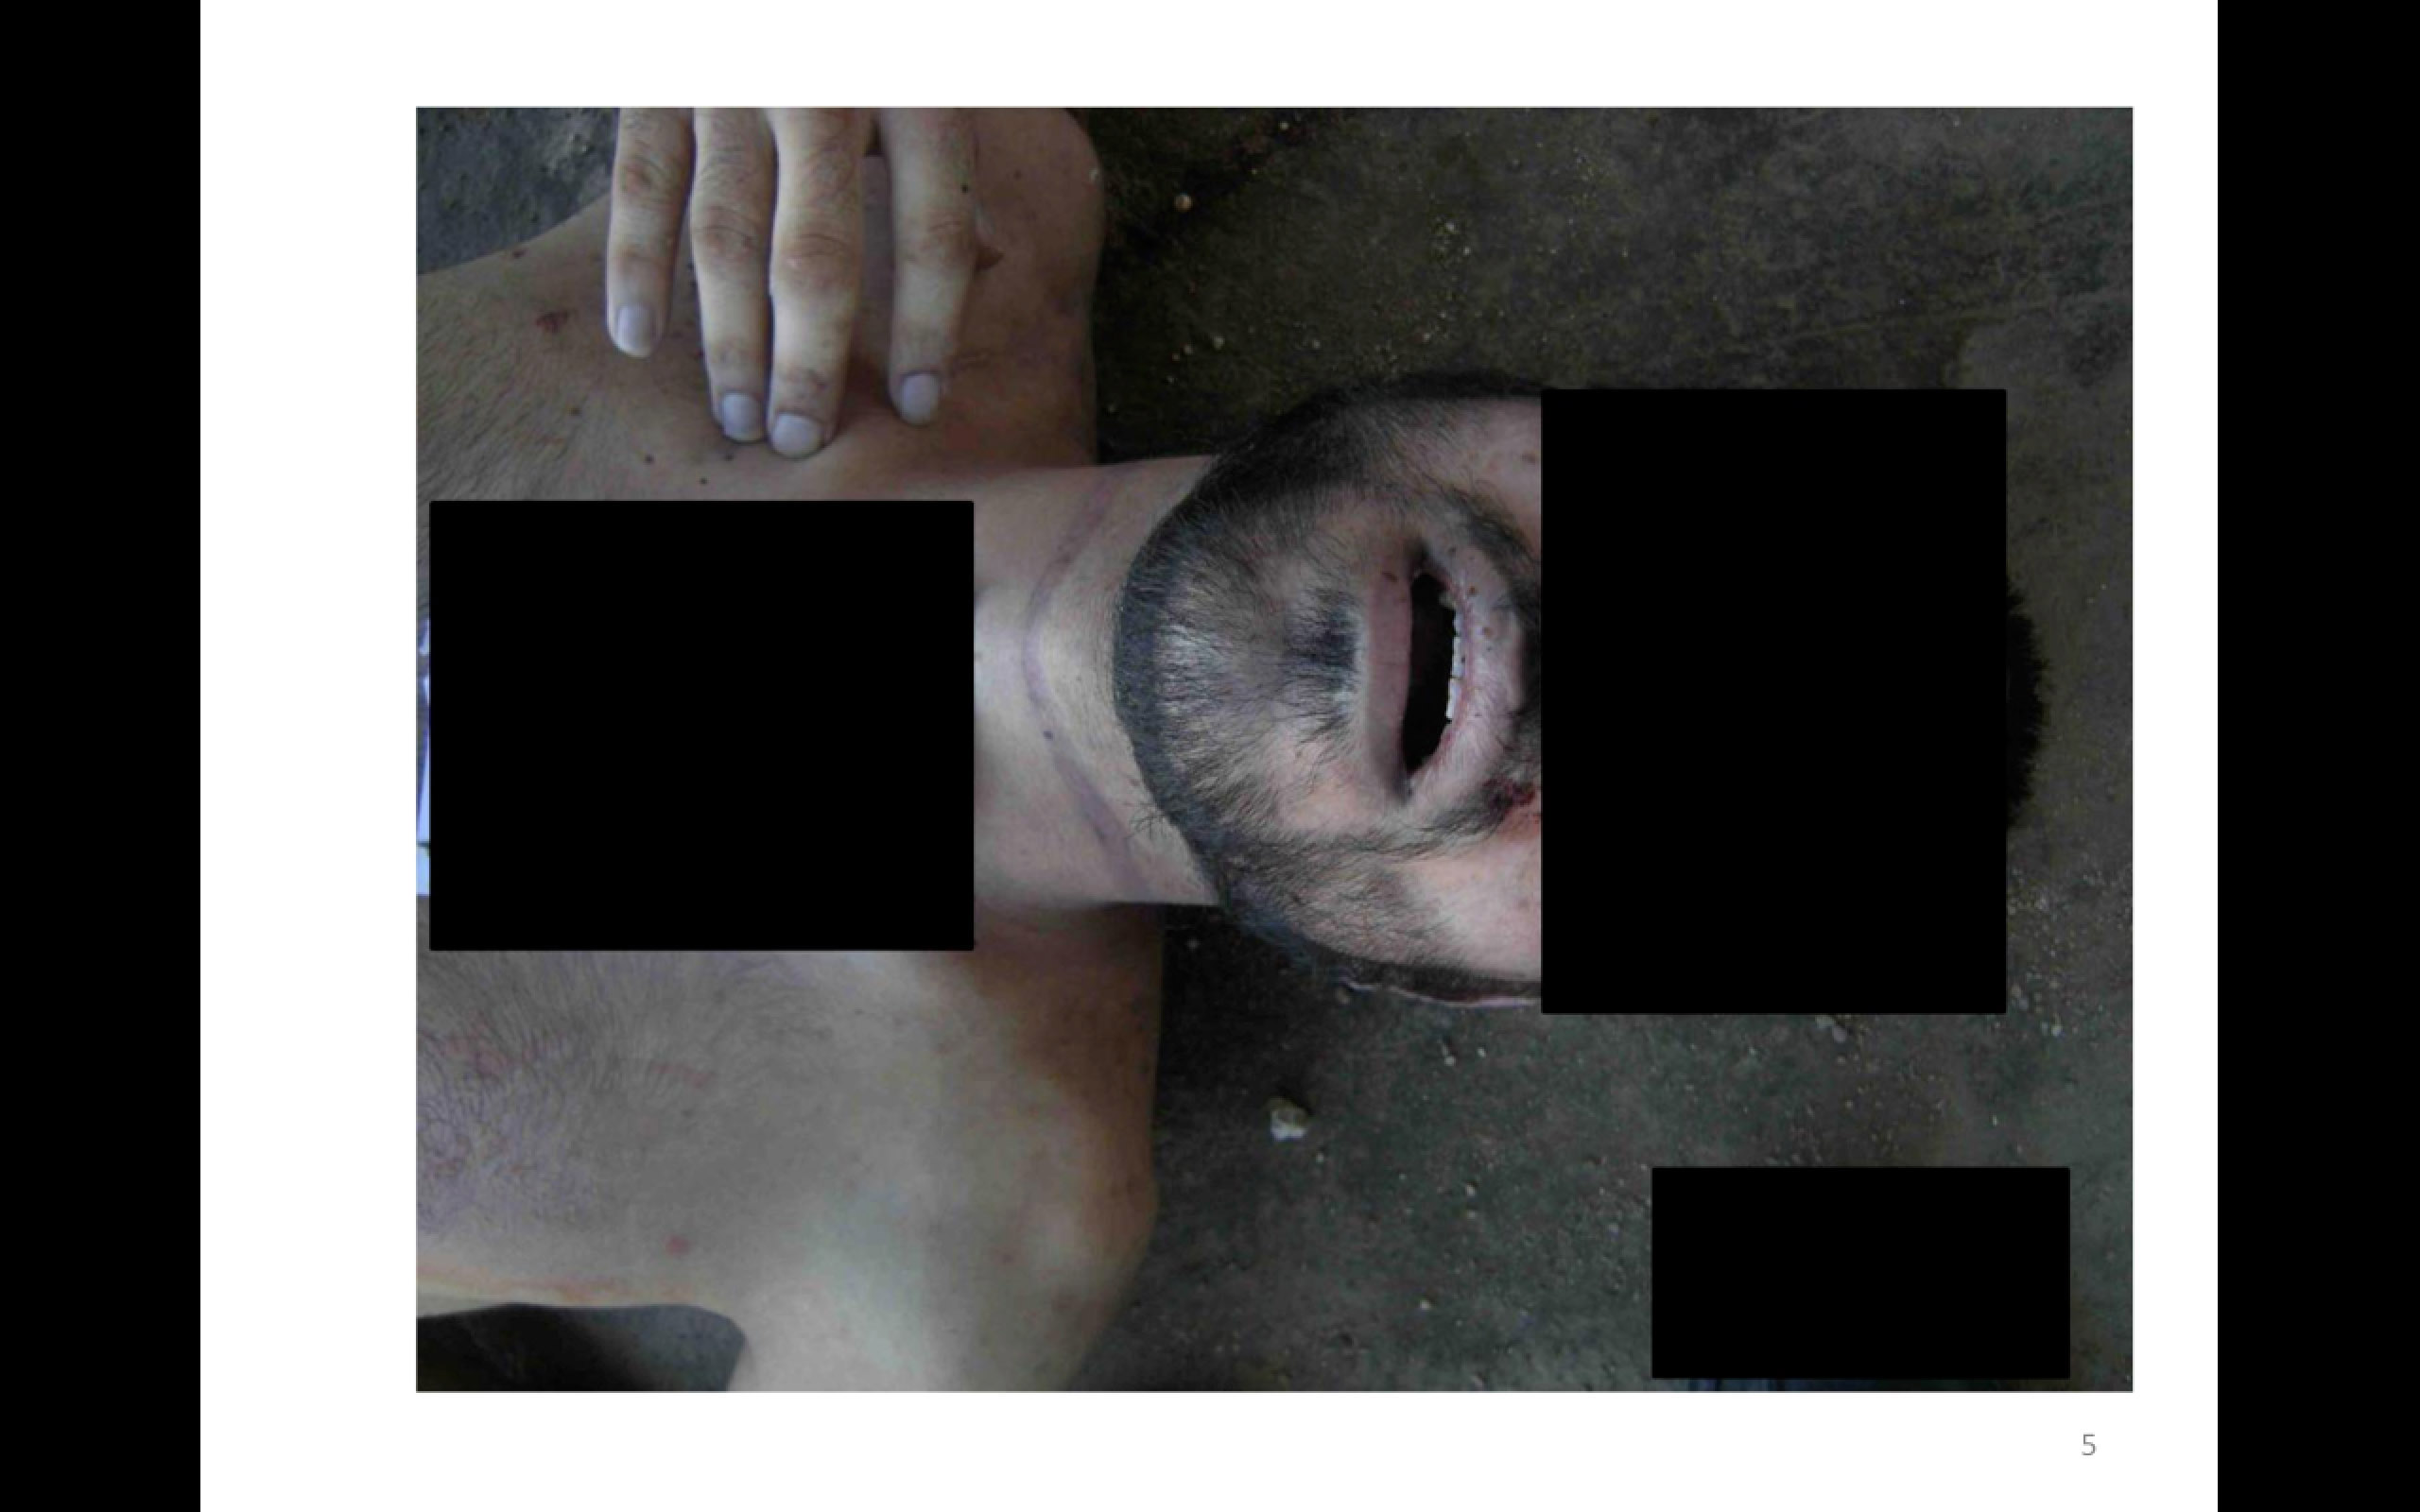 This undated photograph made available in a January 2014 report by the Carter-Ruck law firm, commissioned by the Qatari government, shows evidence of alleged torture and execution at the secret jails of Syria's president, Bashar al-Assad. It is part of an archive of 55,000 images said to depict 11,000 dead bodies photographed over the last two years and leaked to Syrian opposition forces by a Syrian military photographer.